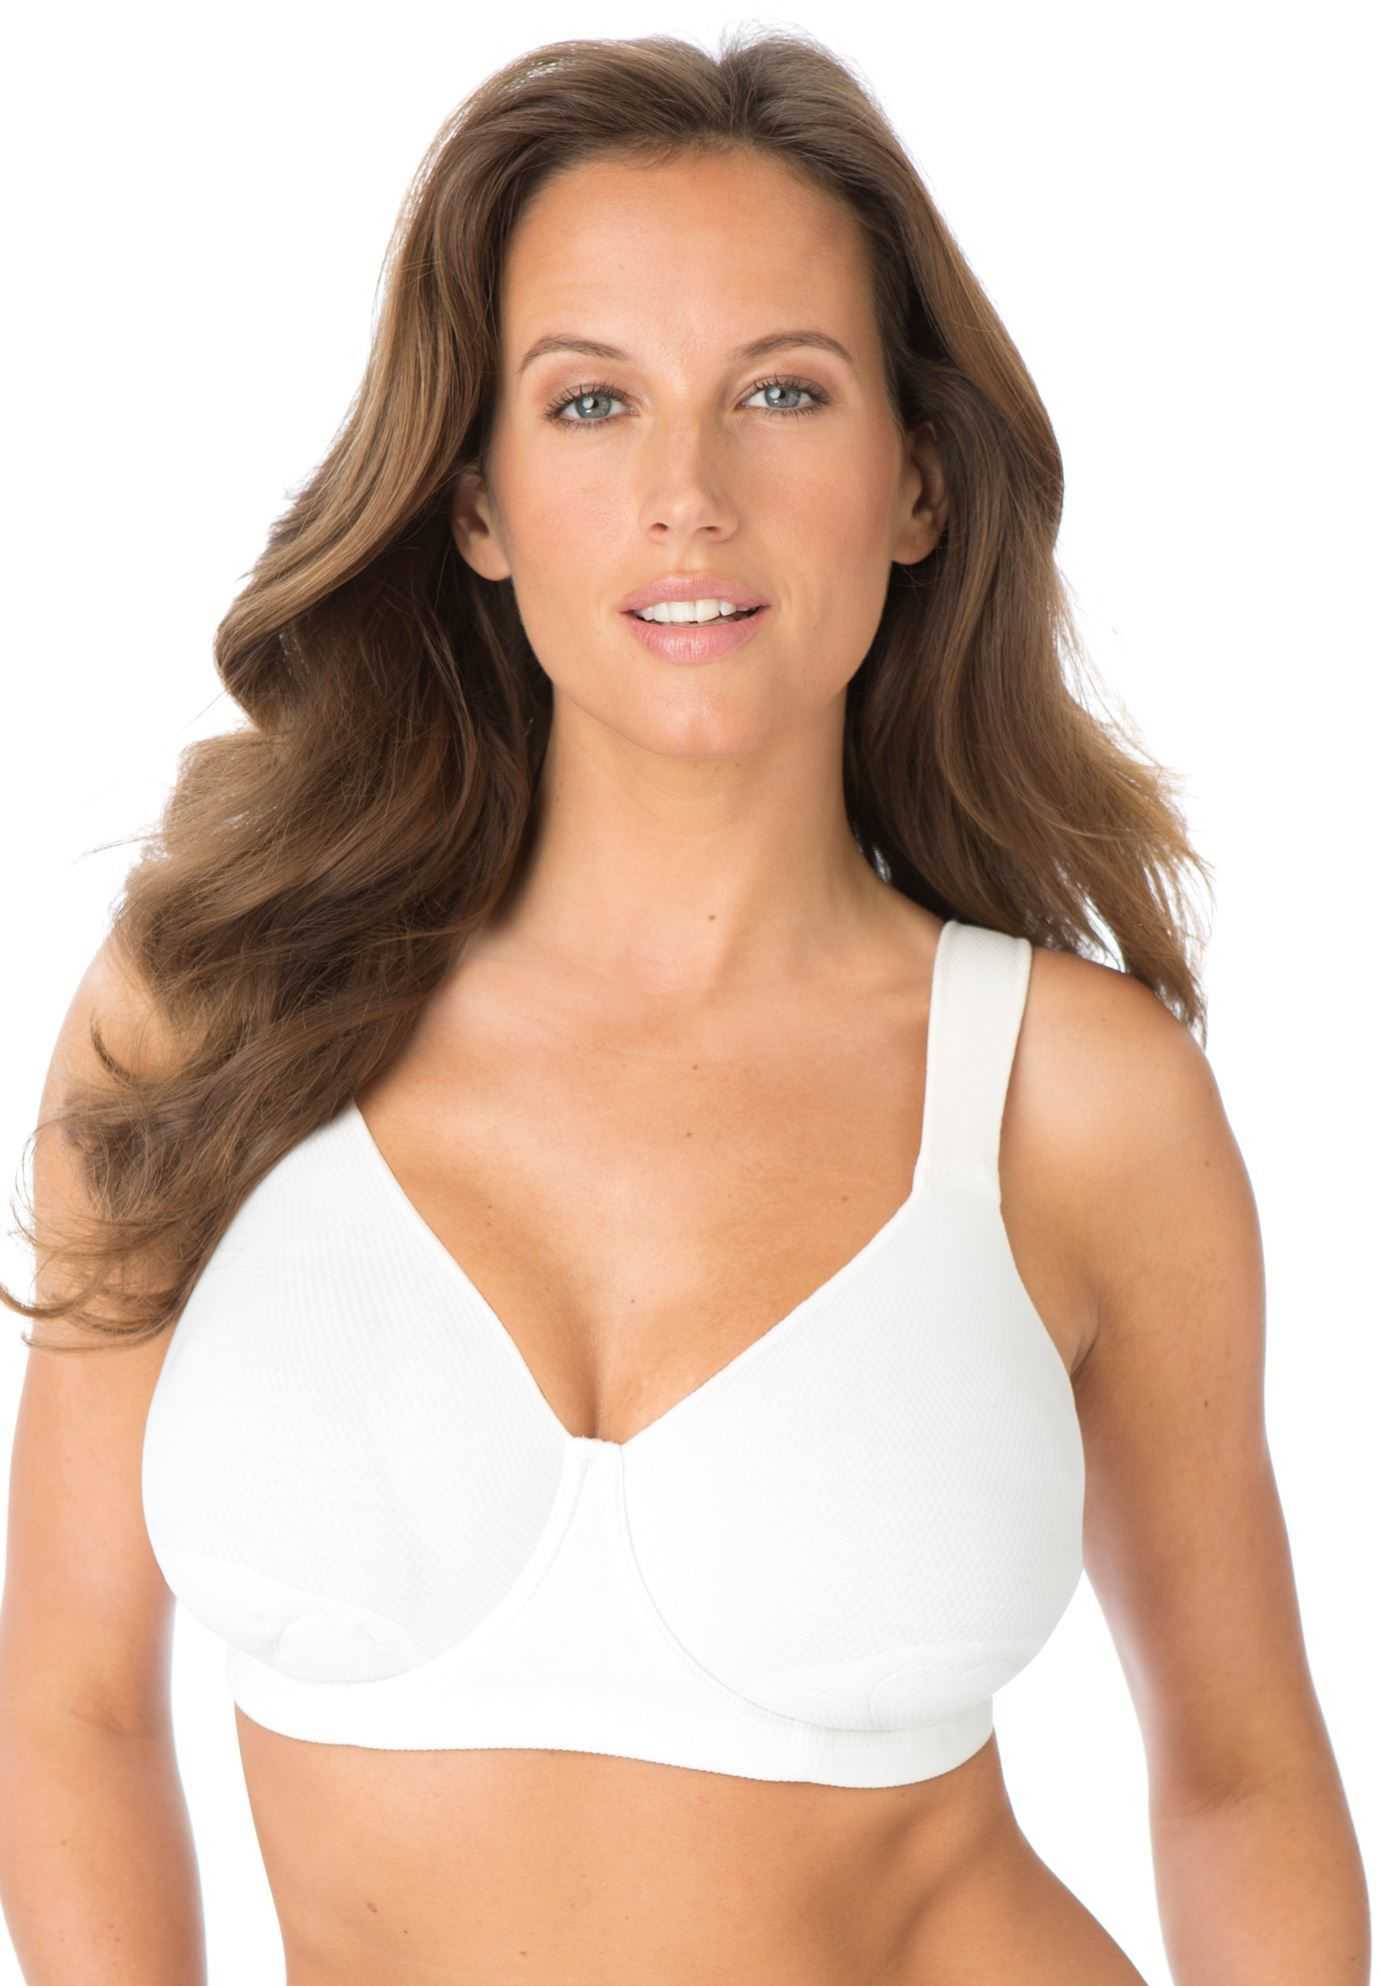 e4bad249b4 Petal Boost Underwire Bra by Comfort Choice - Women s Plus Size Clothing